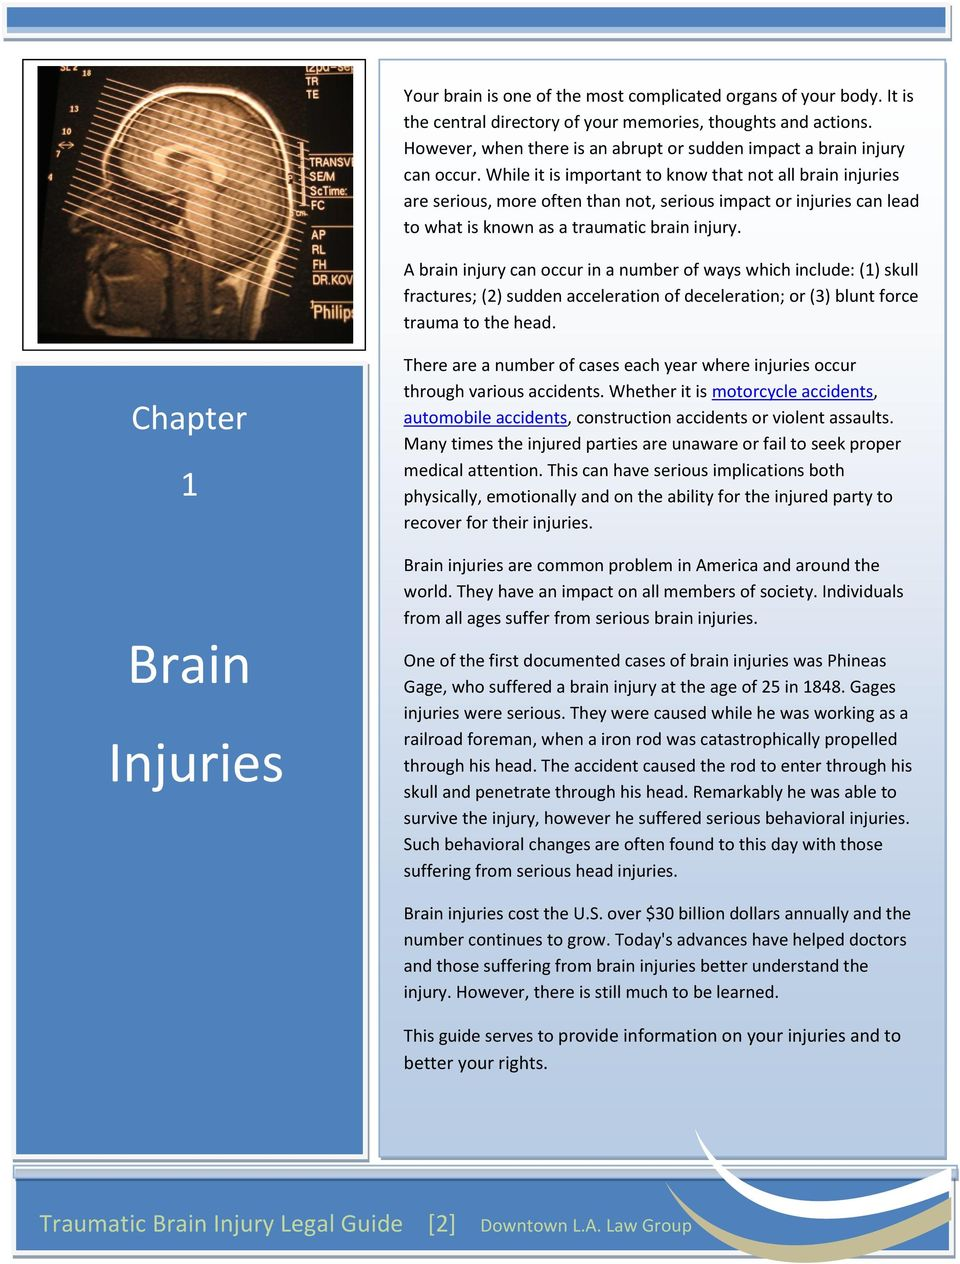 While it is important to know that not all brain injuries are serious, more often than not, serious impact or injuries can lead to what is known as a traumatic brain injury.